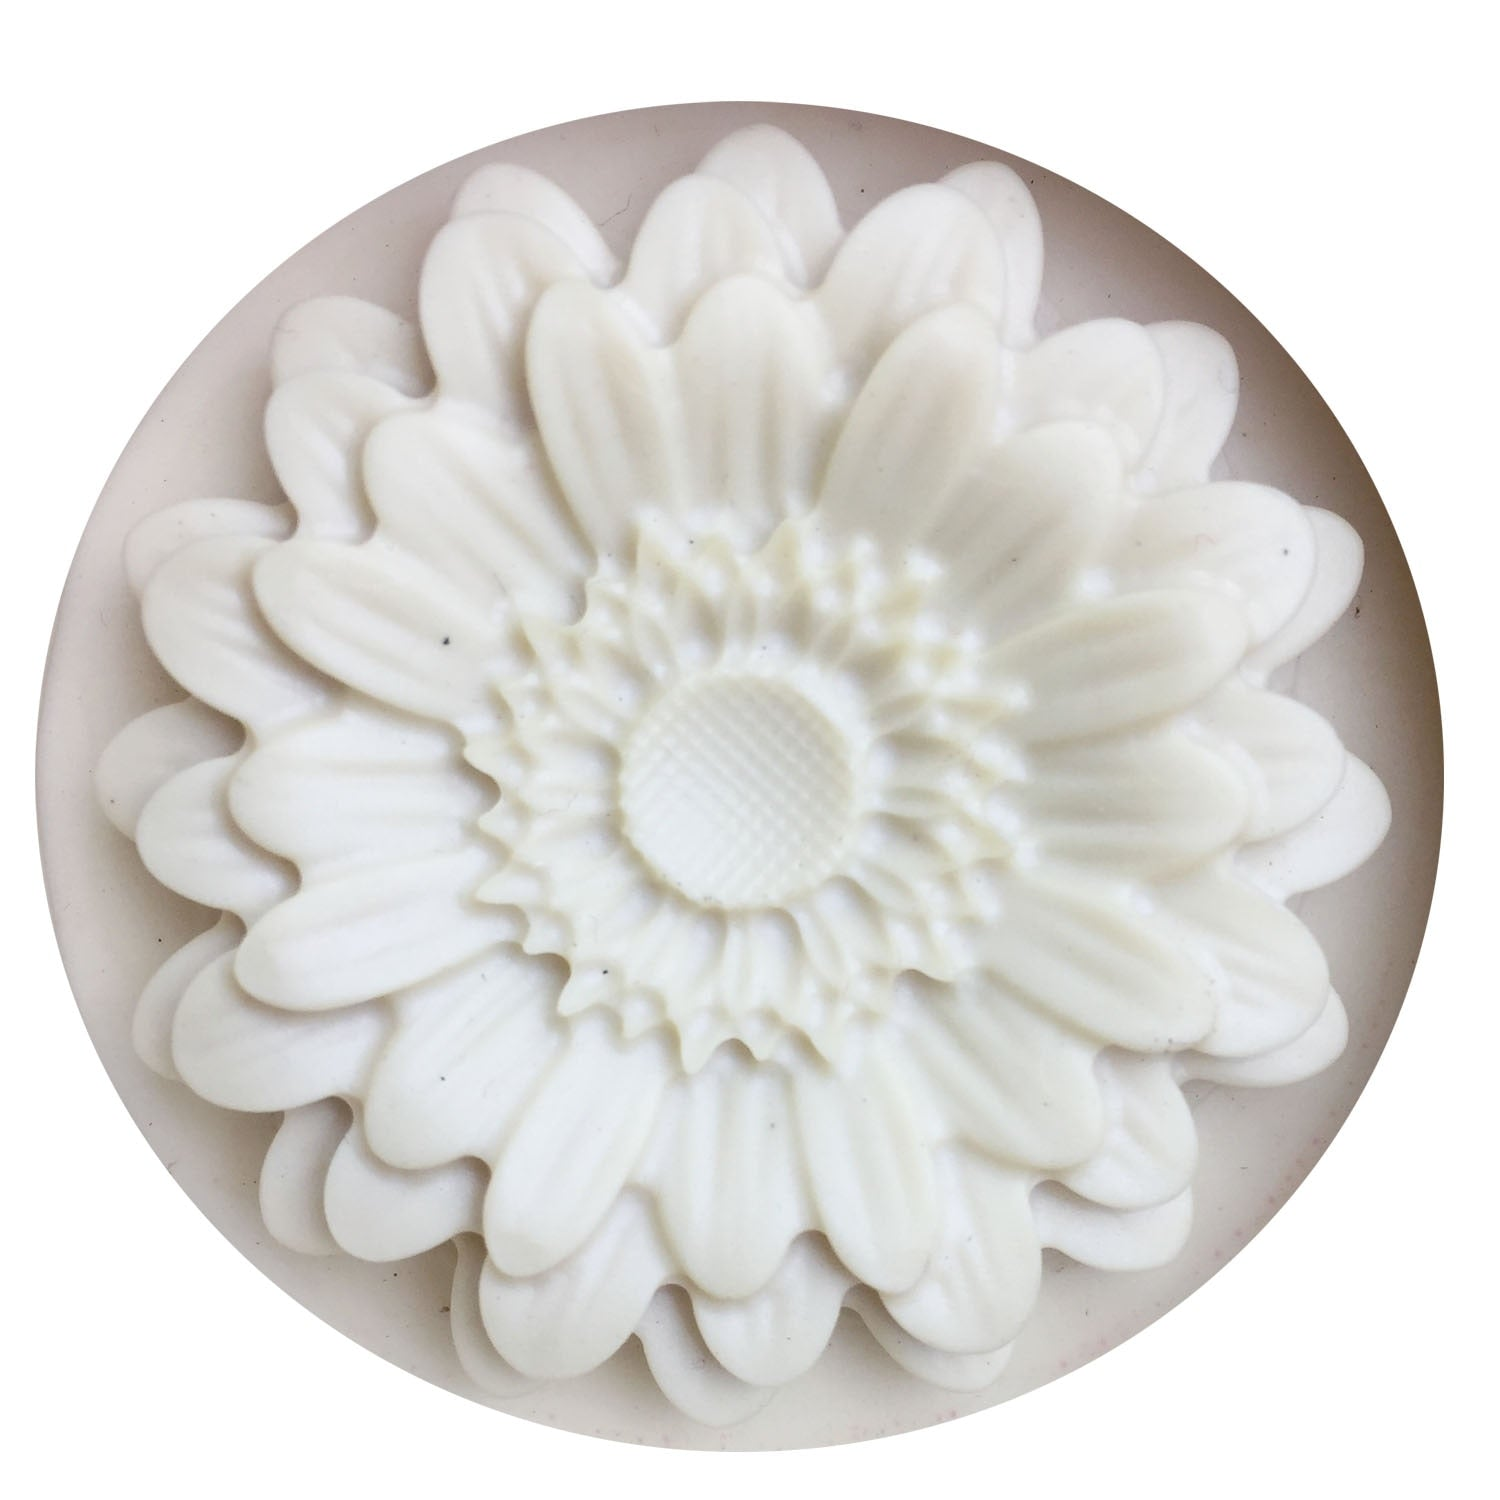 Buy OK-CHEF - Chrysanthemums mold Flowers silicone moulds 3D jelly cake molds Sunflower cake decoration tools wholesale